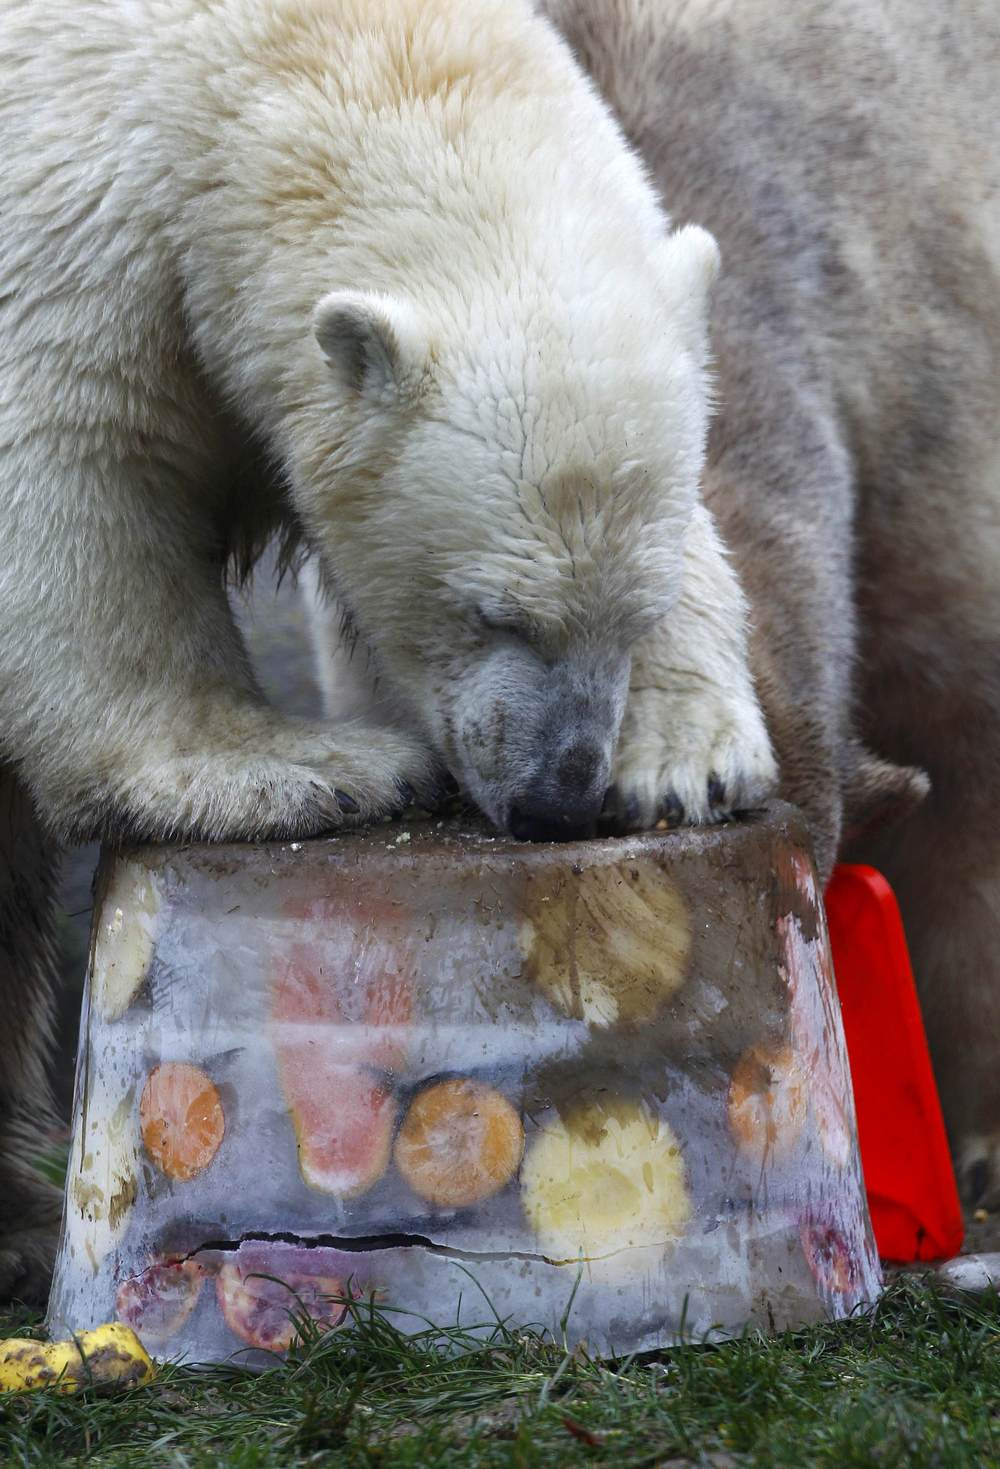 A polar bear eats an ice cake with fresh fruit and cream to celebrate its first birthday in an enclosure at Tierpark Hellabrunn zoo in Munich